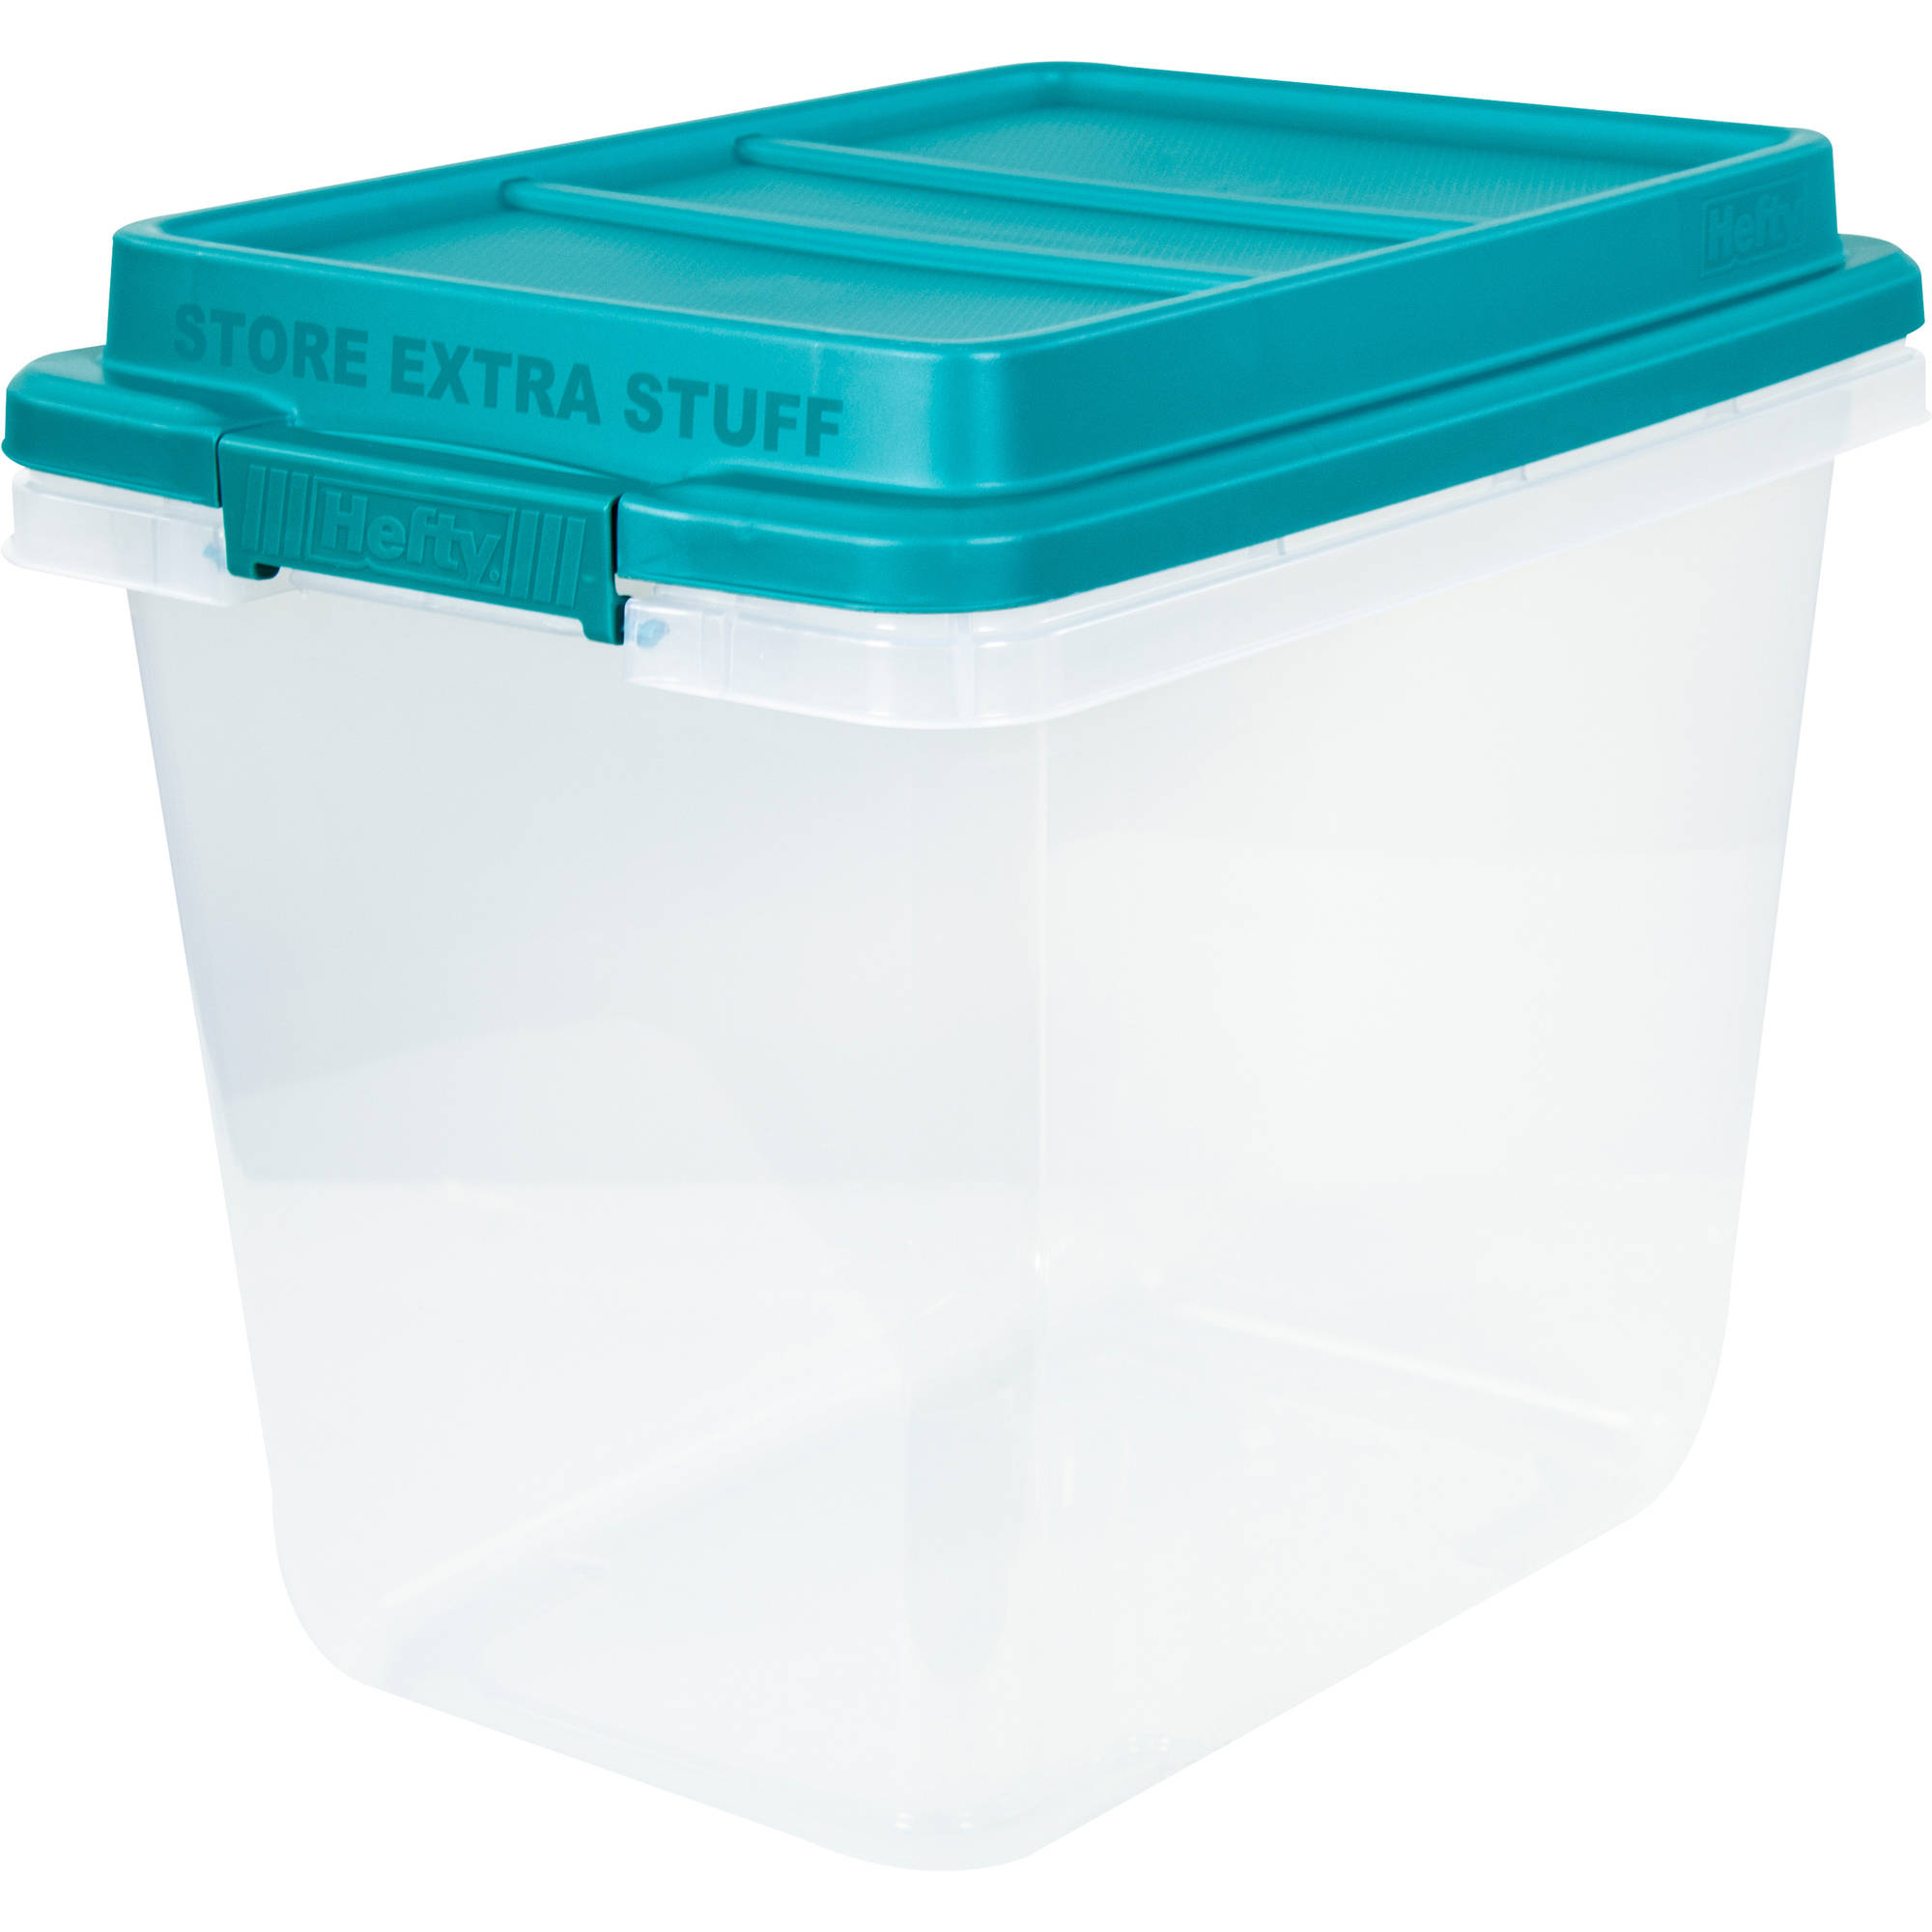 Hefty 32 Quart Hi-rise Latching Container - Clear